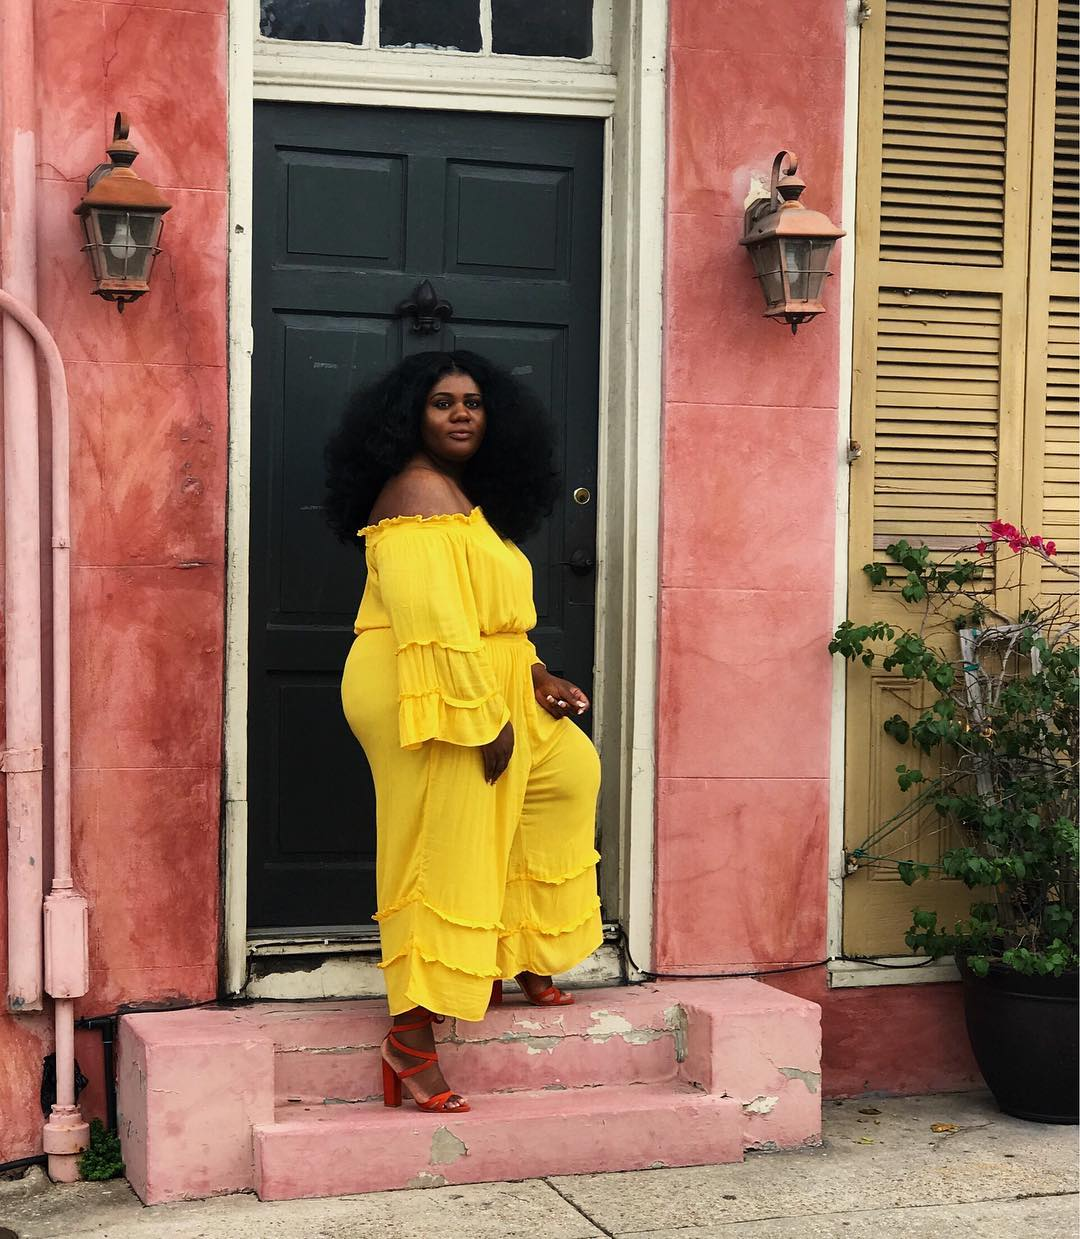 curvy-side-life-look-flattering-outfit-inspiration-stylish-curvy-woman